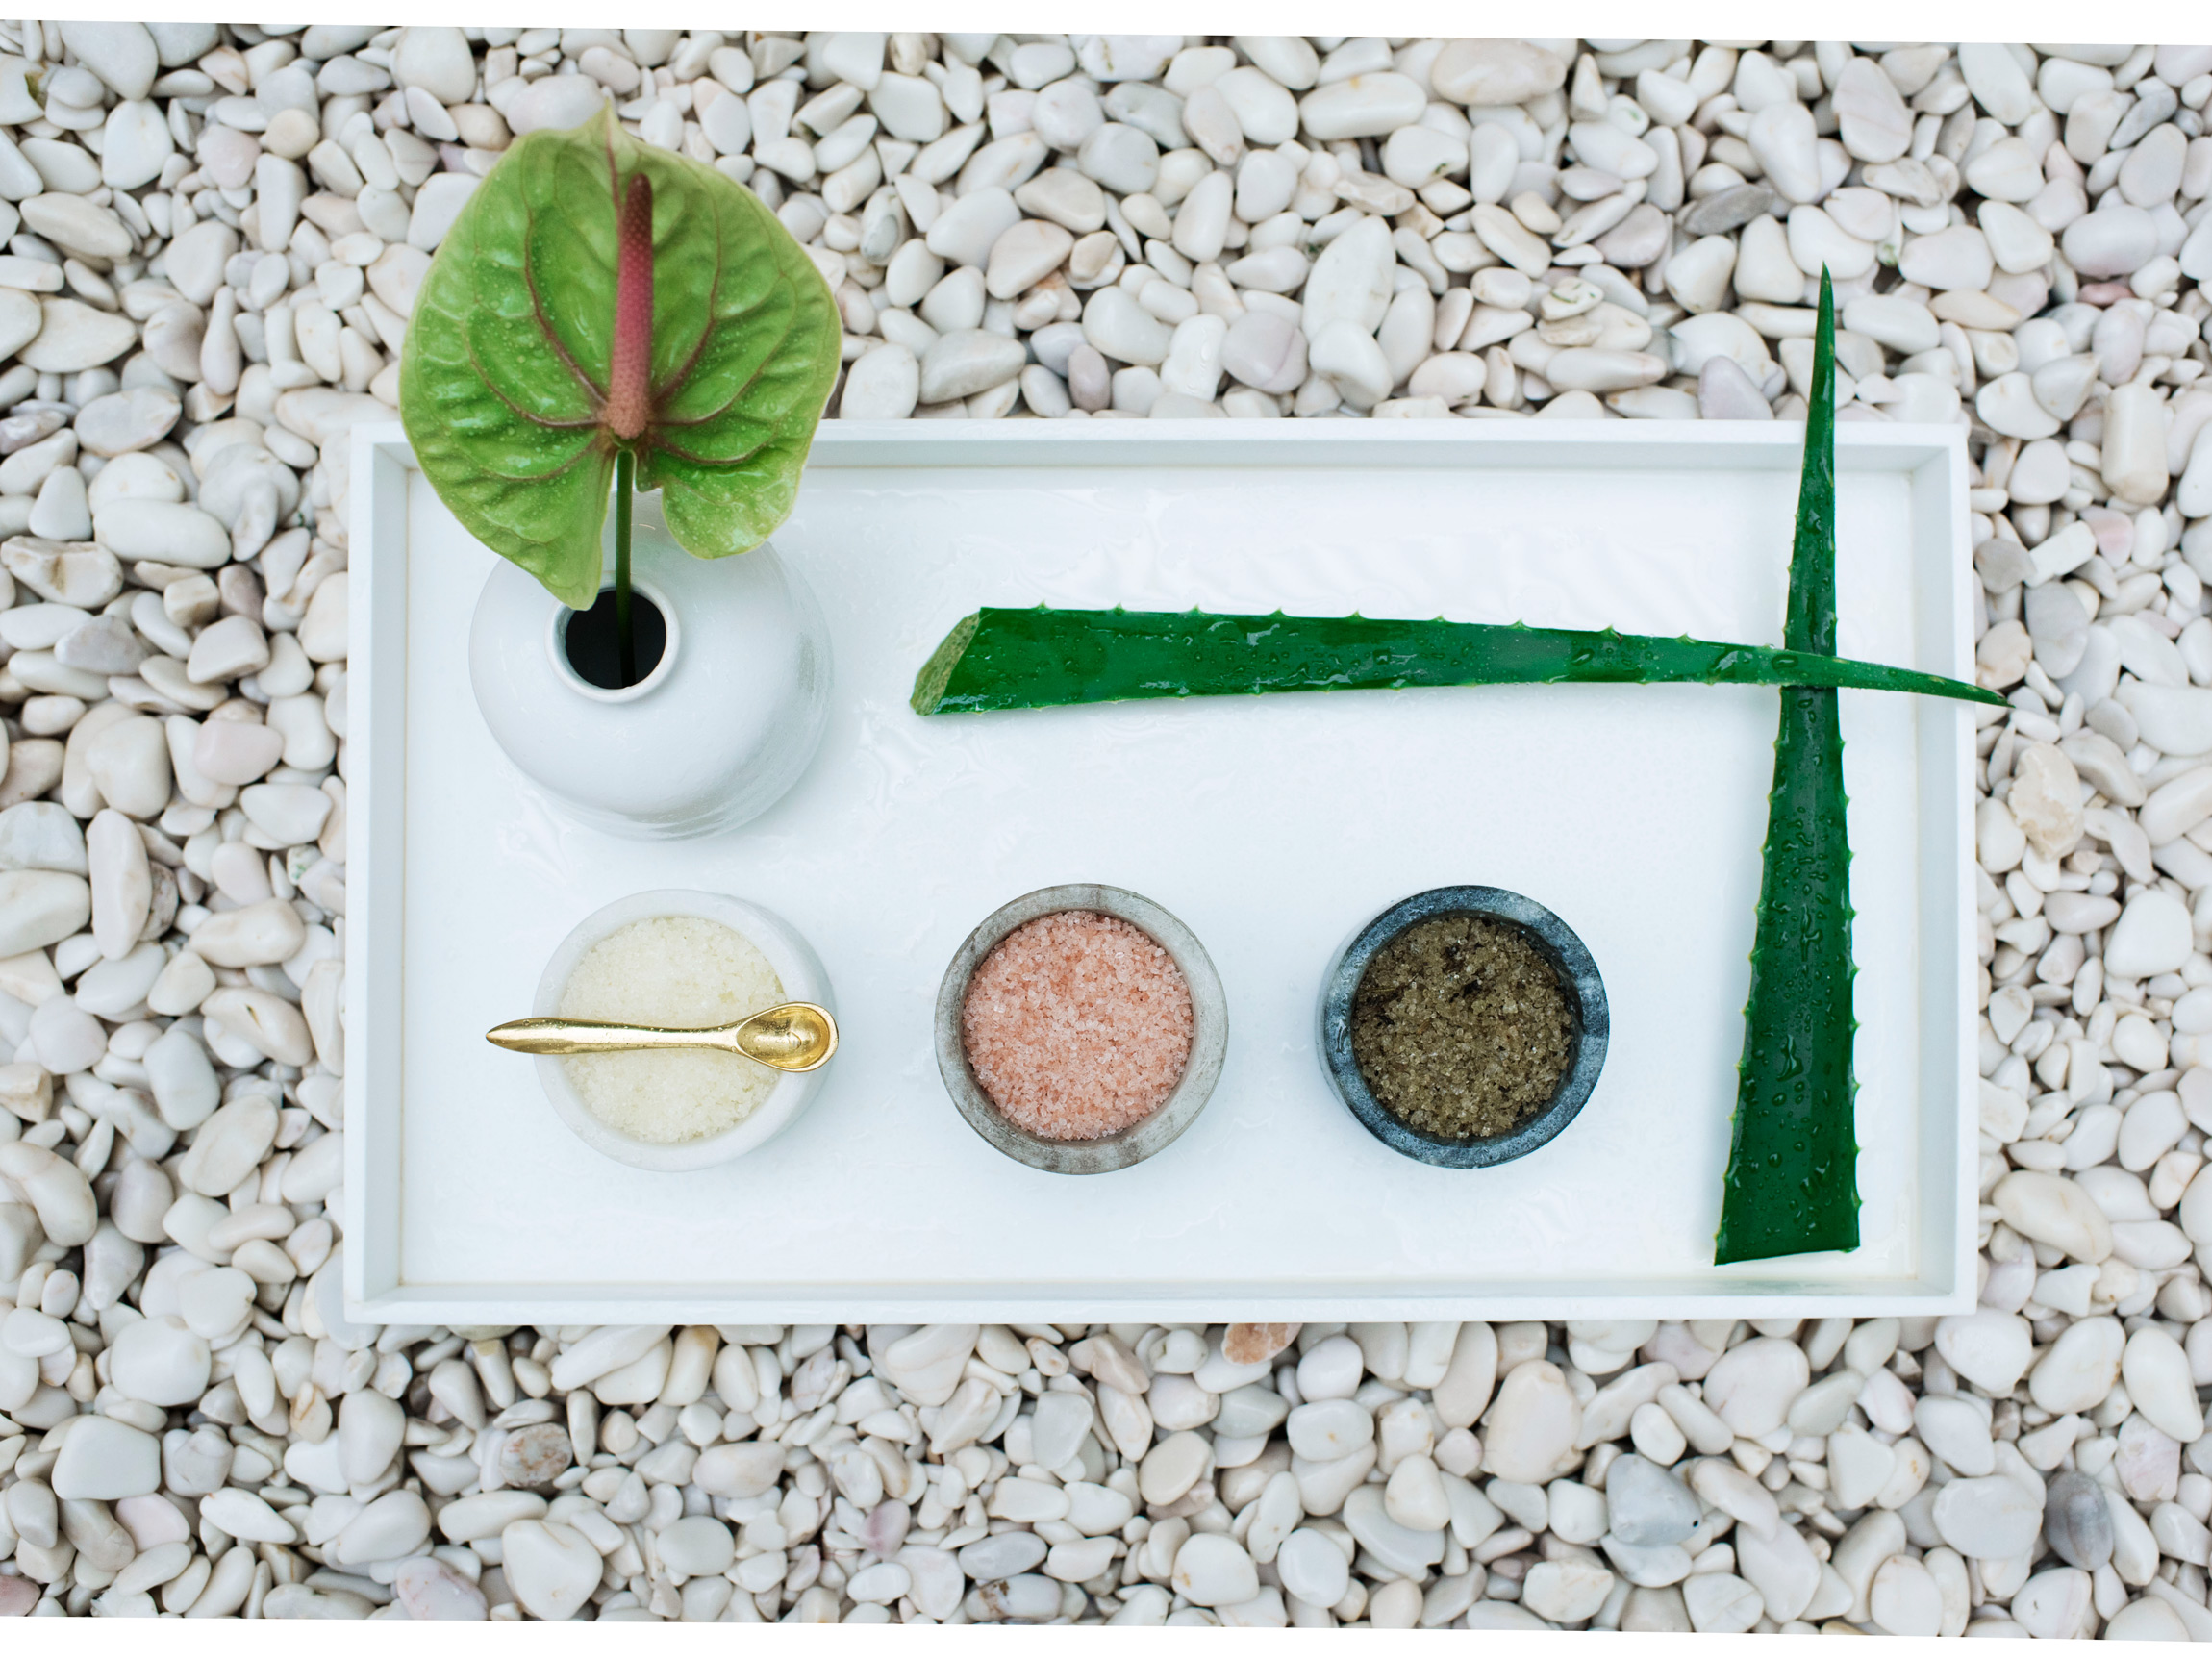 Luxury Resort Spa Ingredients